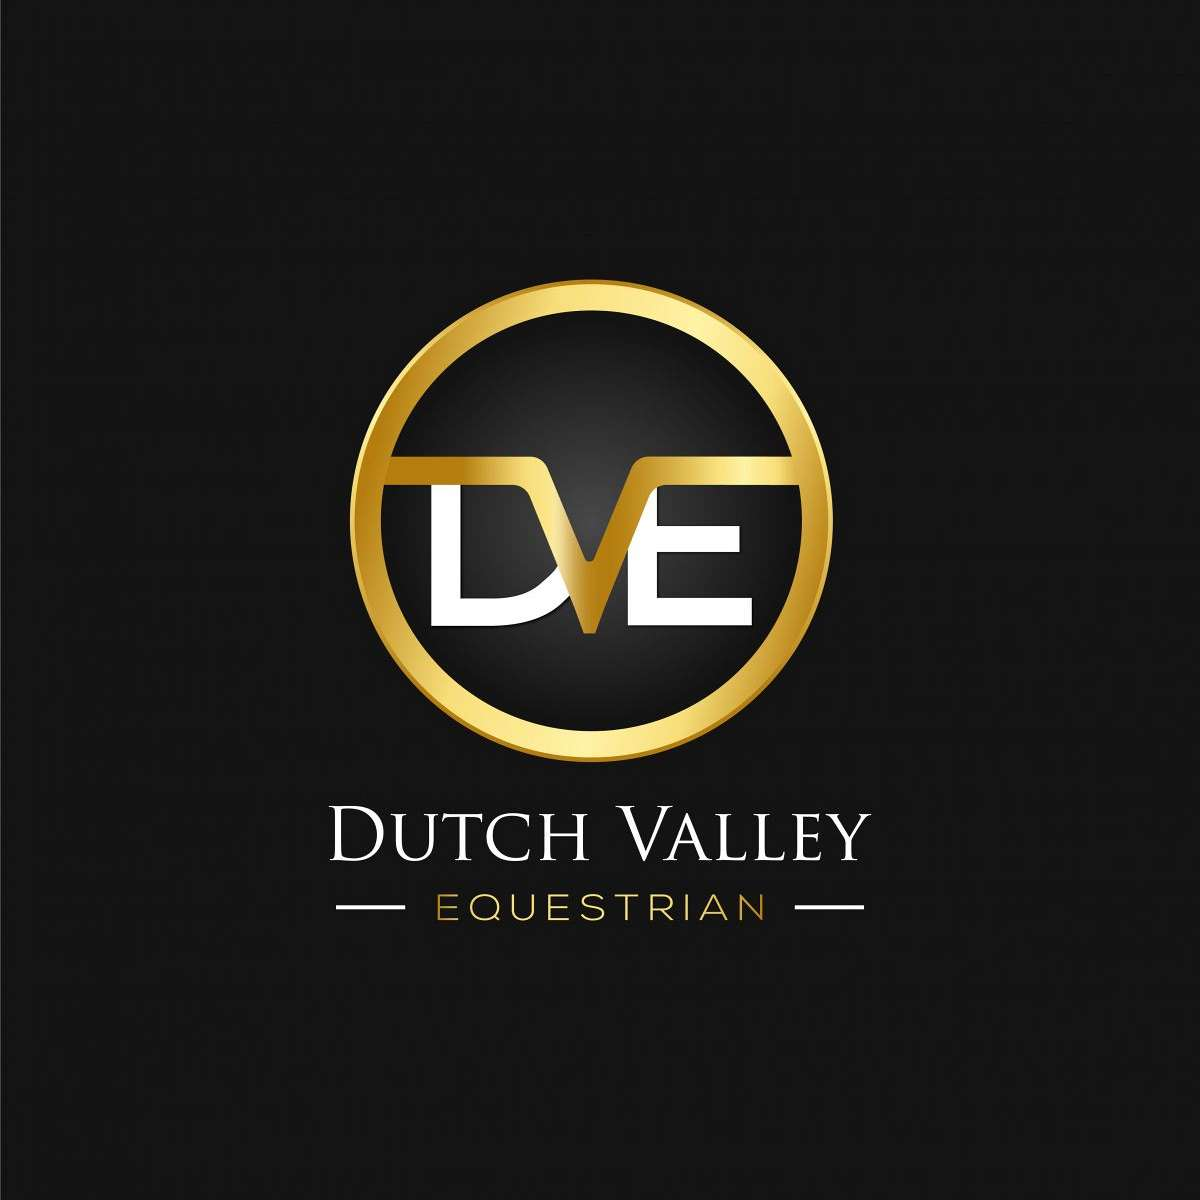 Dutch Valley Equestrian LLC